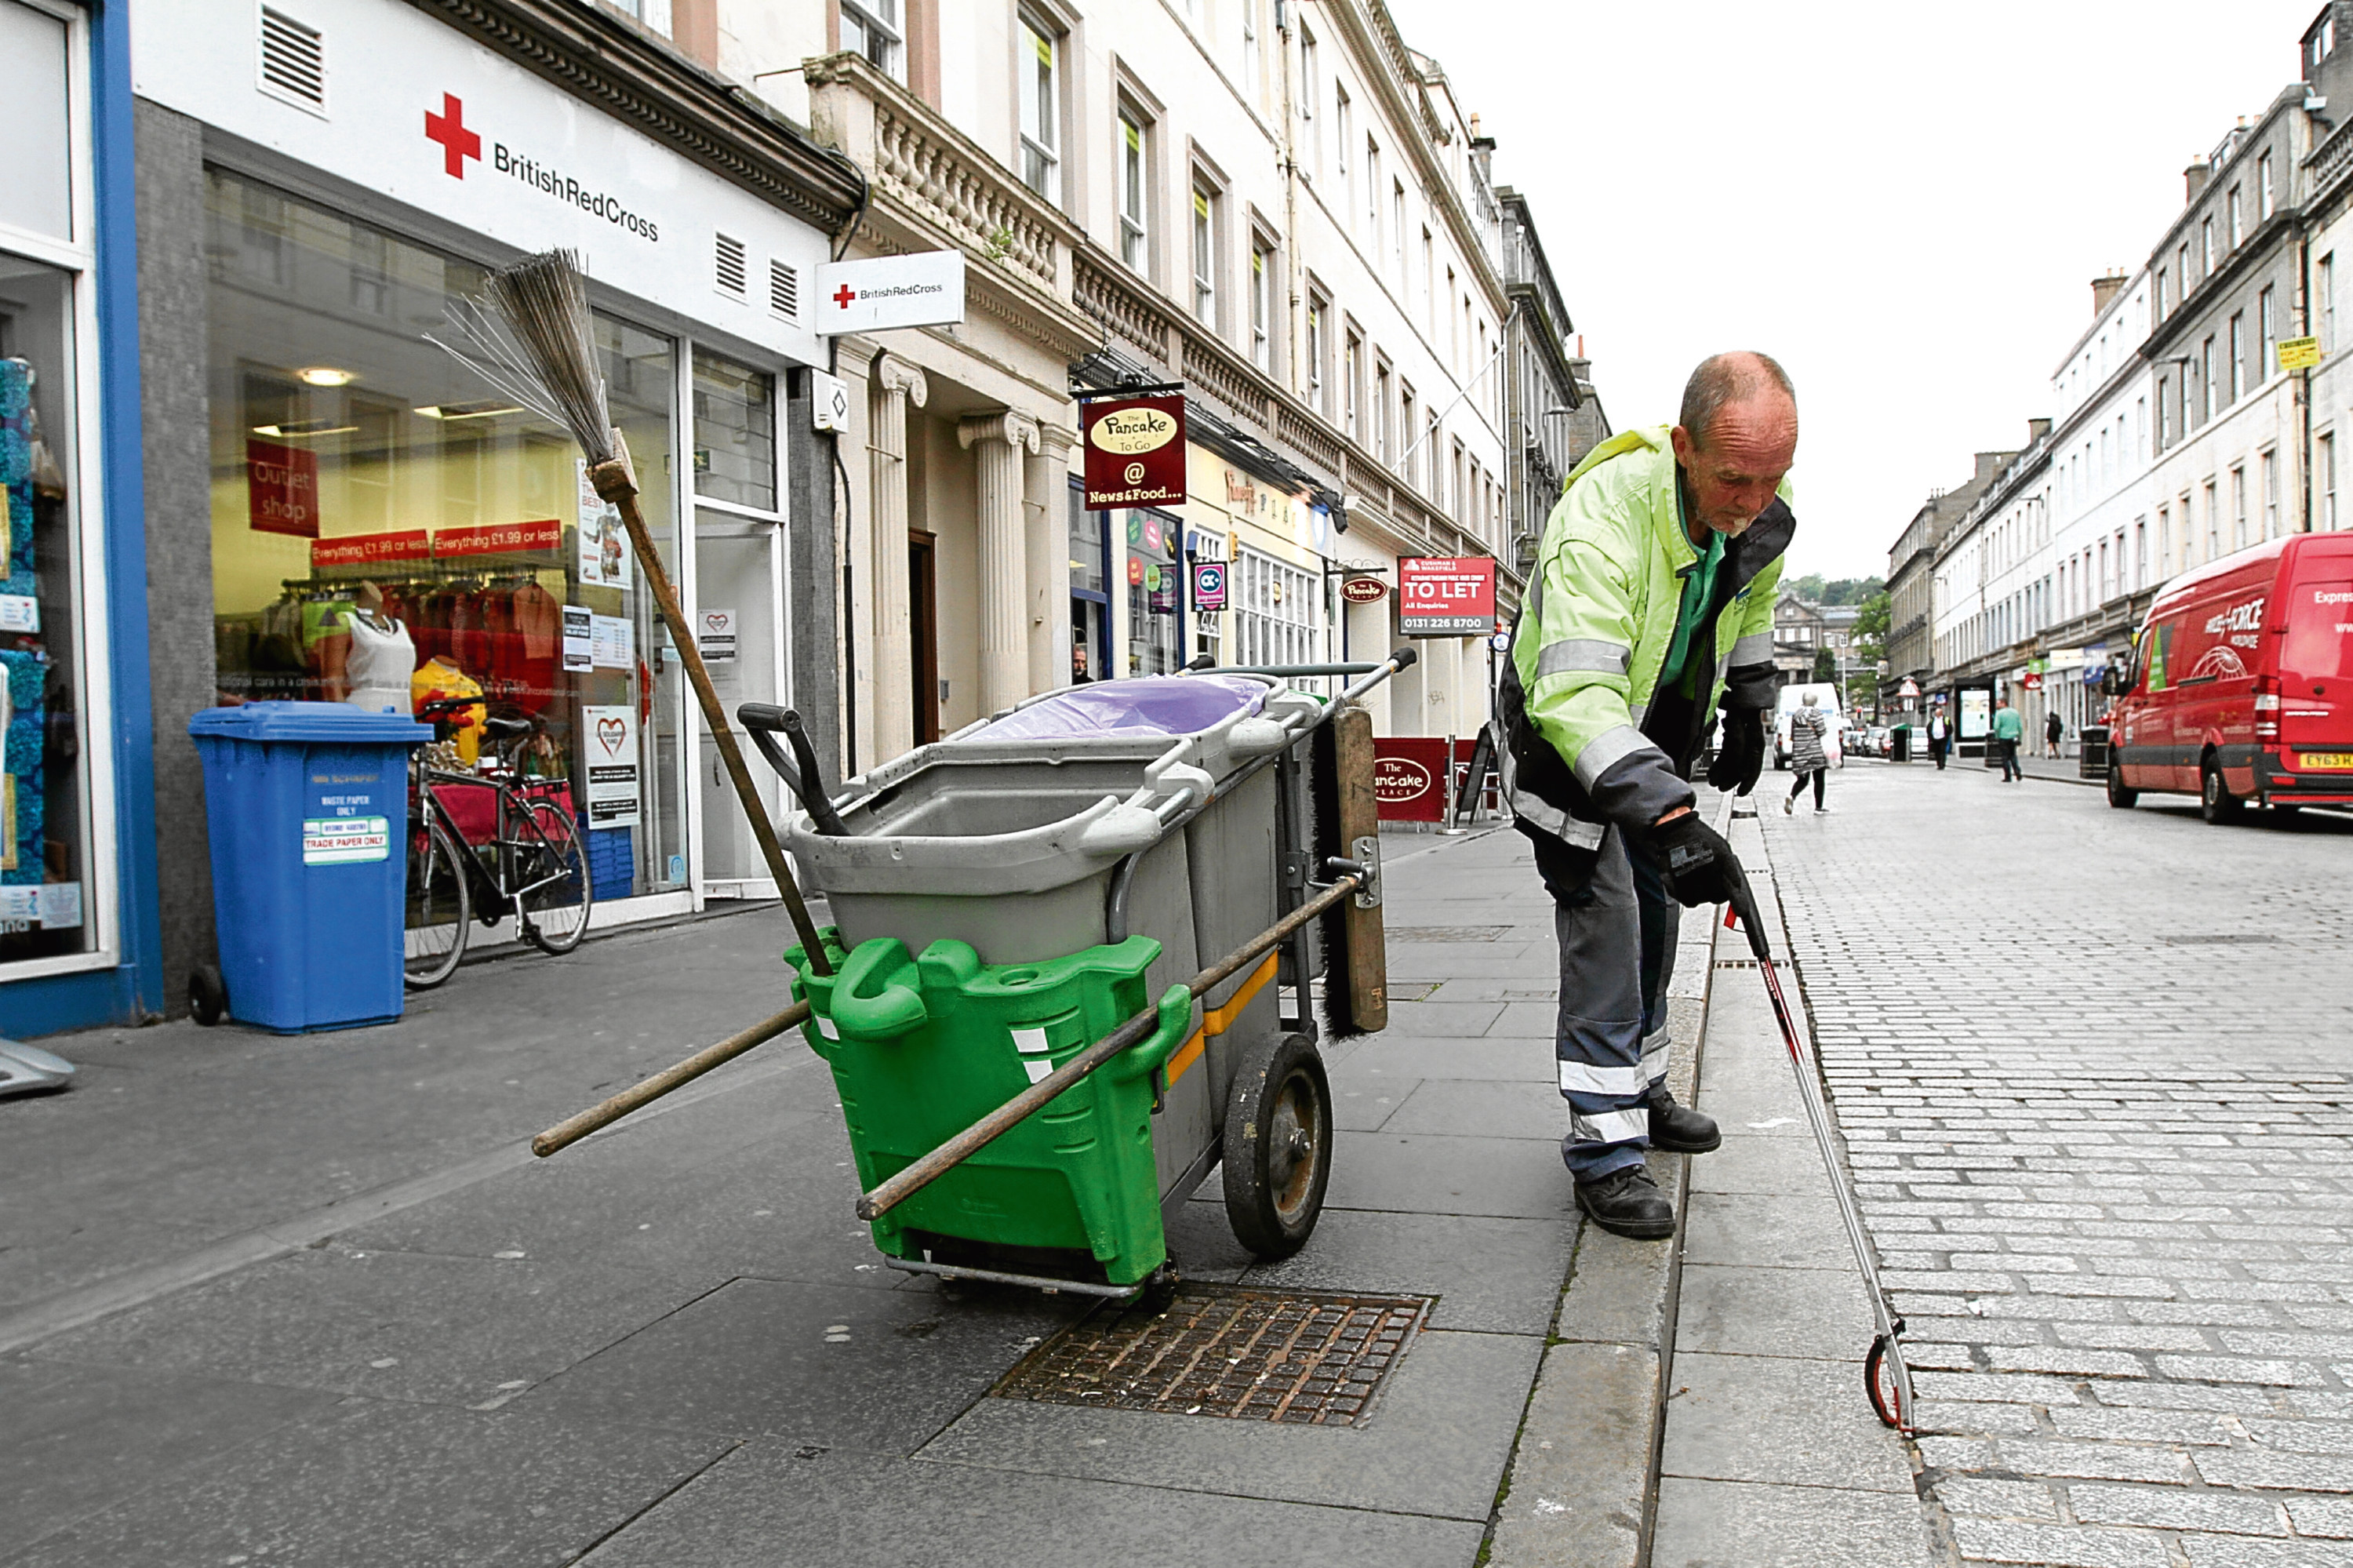 A council street cleaner in the city.